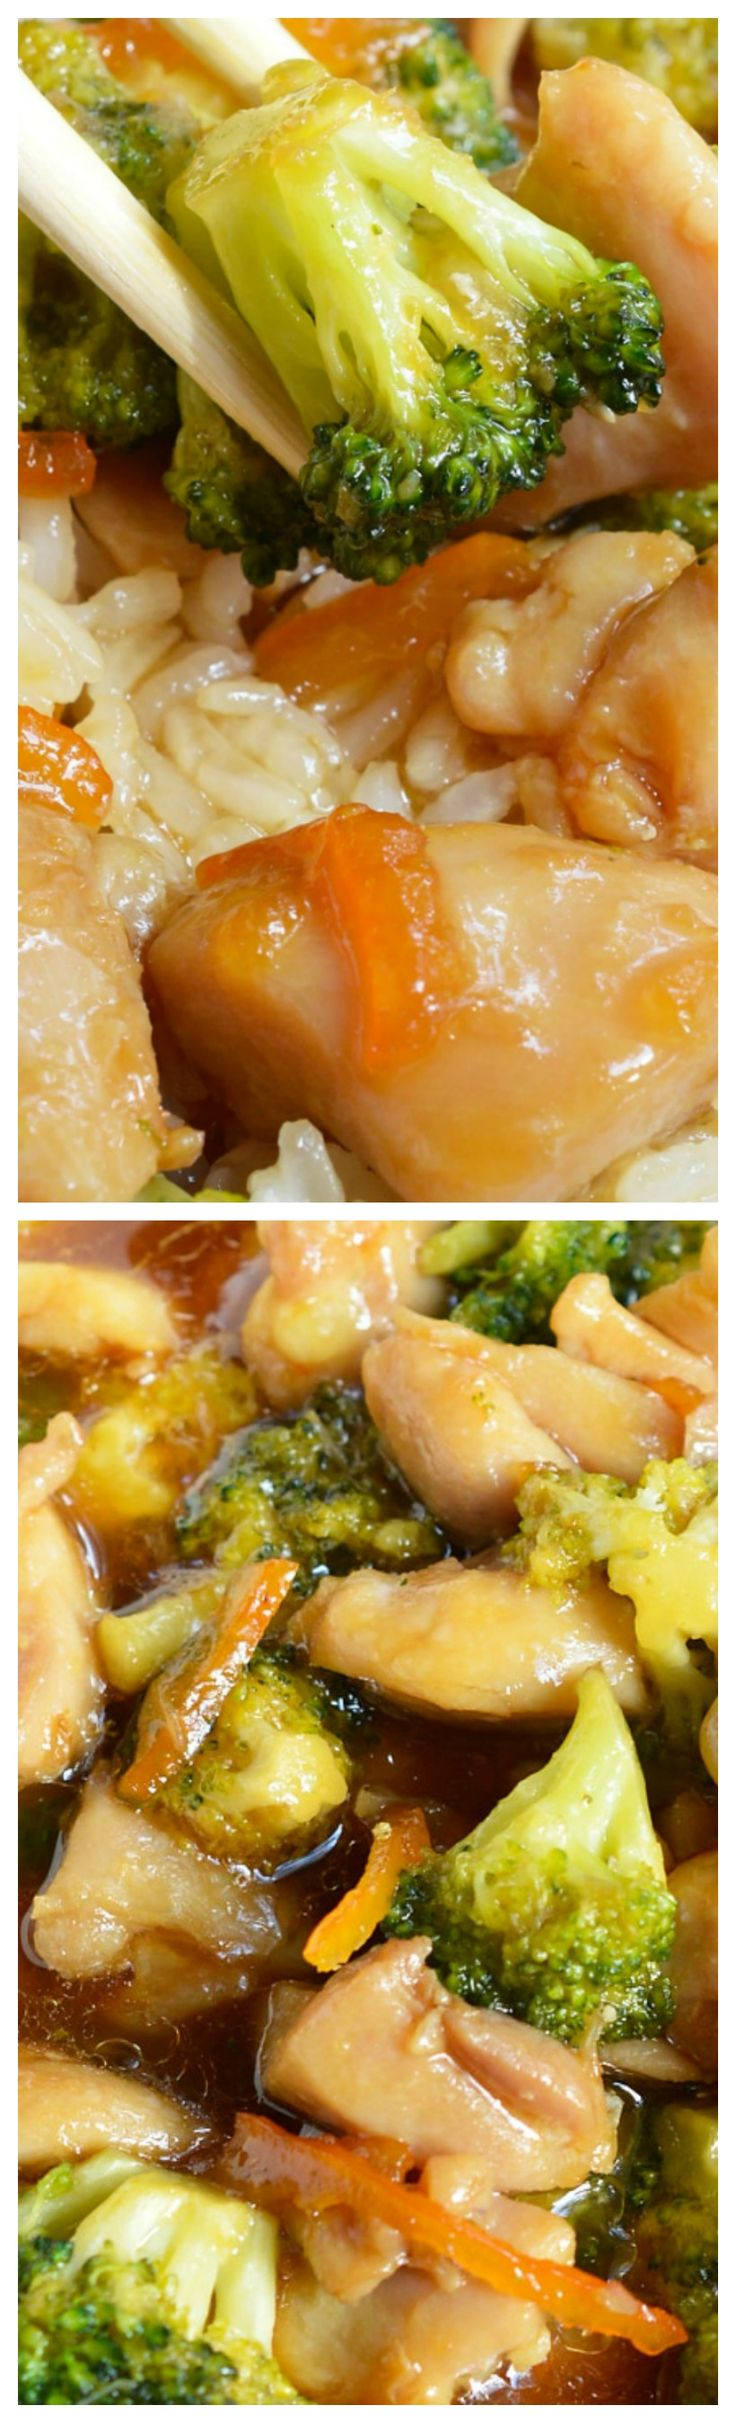 Orange Soy Chicken Broccoli ~ With six ingredients and about 20 minutes you can have a delicious Asian inspired meal.